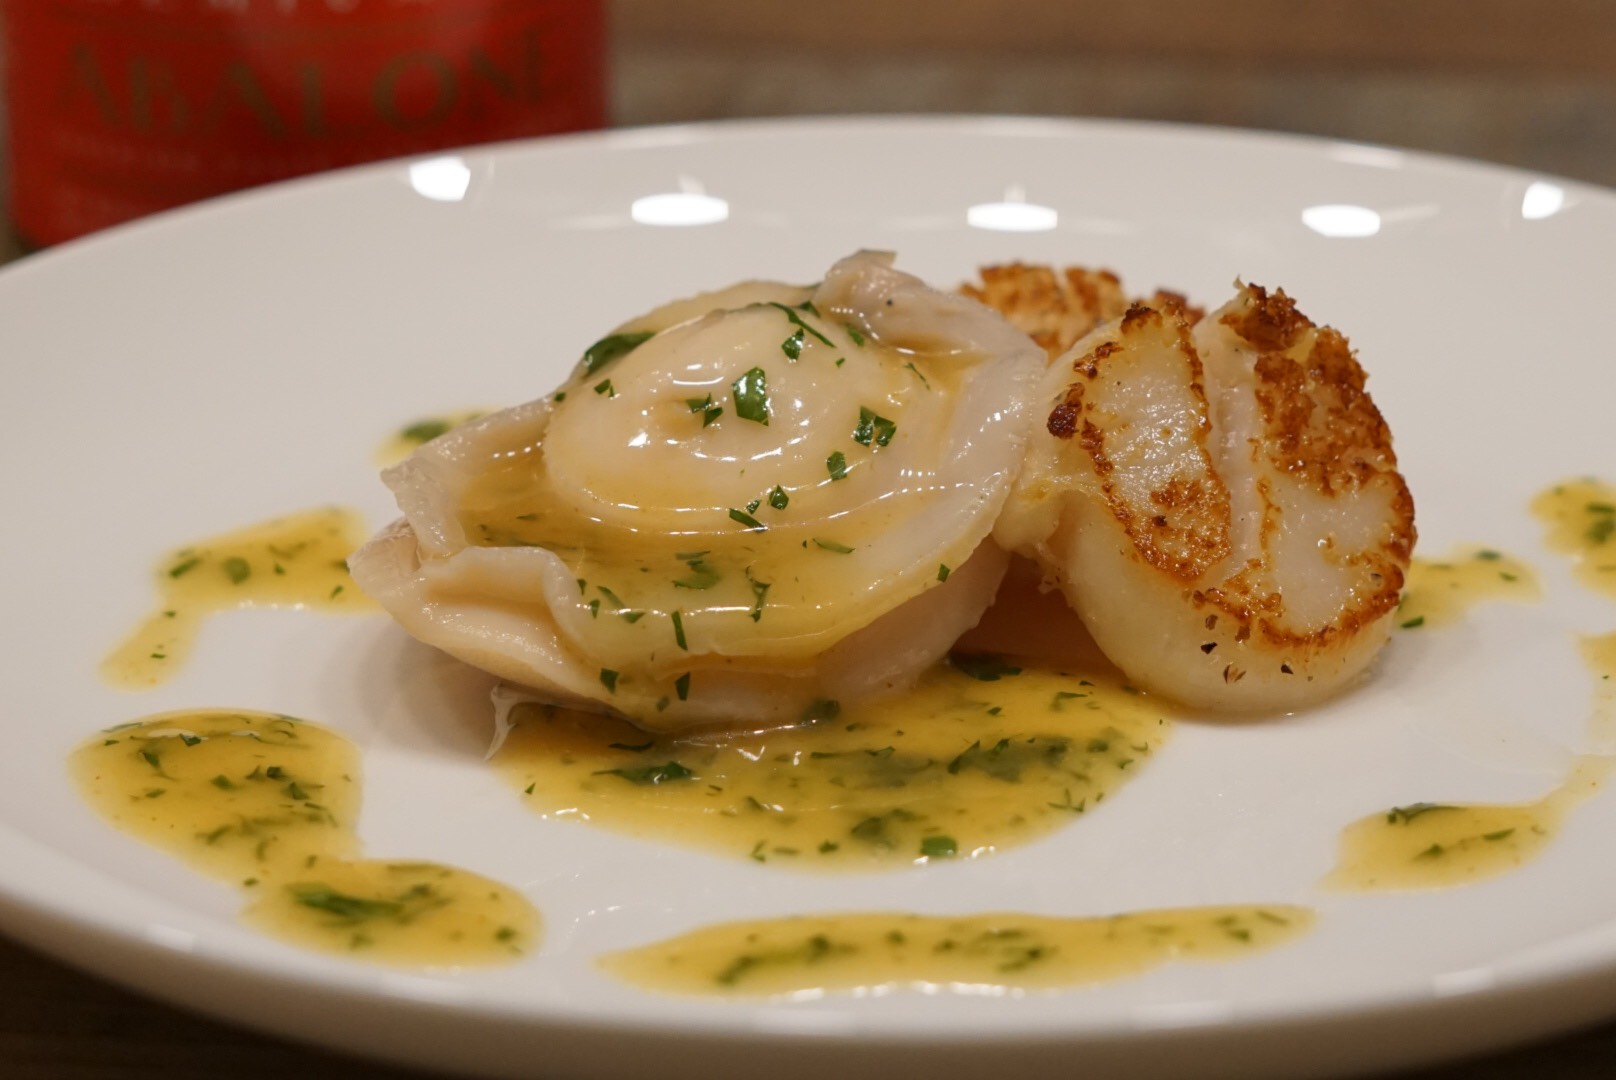 ABALONE AND SCALLOPS SERVED IN A SCALLOP AND HERB SAUCE